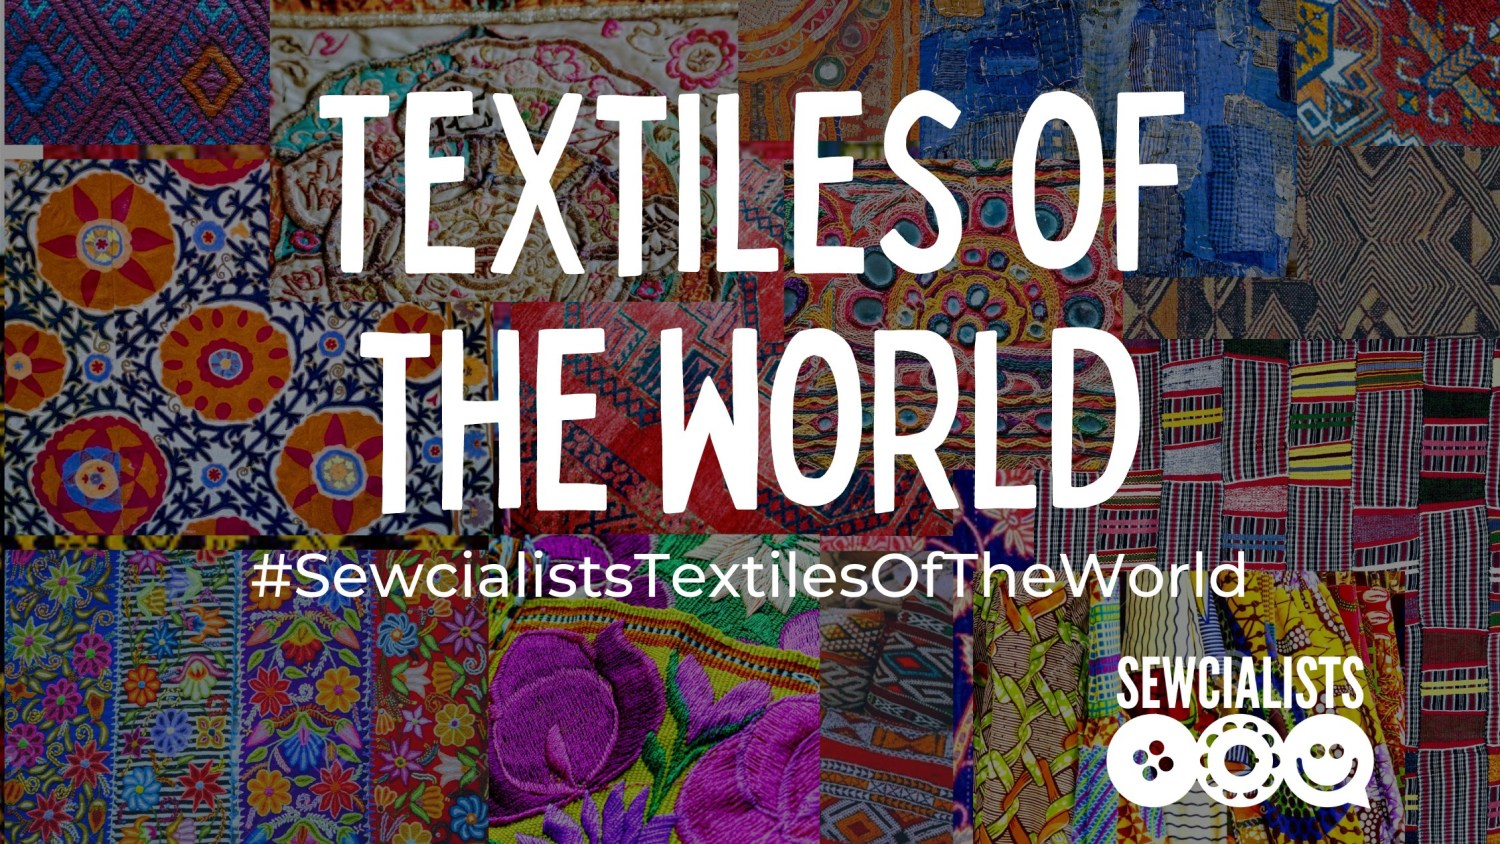 "A background of a variety of colorful printed fabrics with text that says ""textiles of the world"" and #SewcialistsTextilesOfTheWorld. The Sewcialists logo is in the bottom right corner."